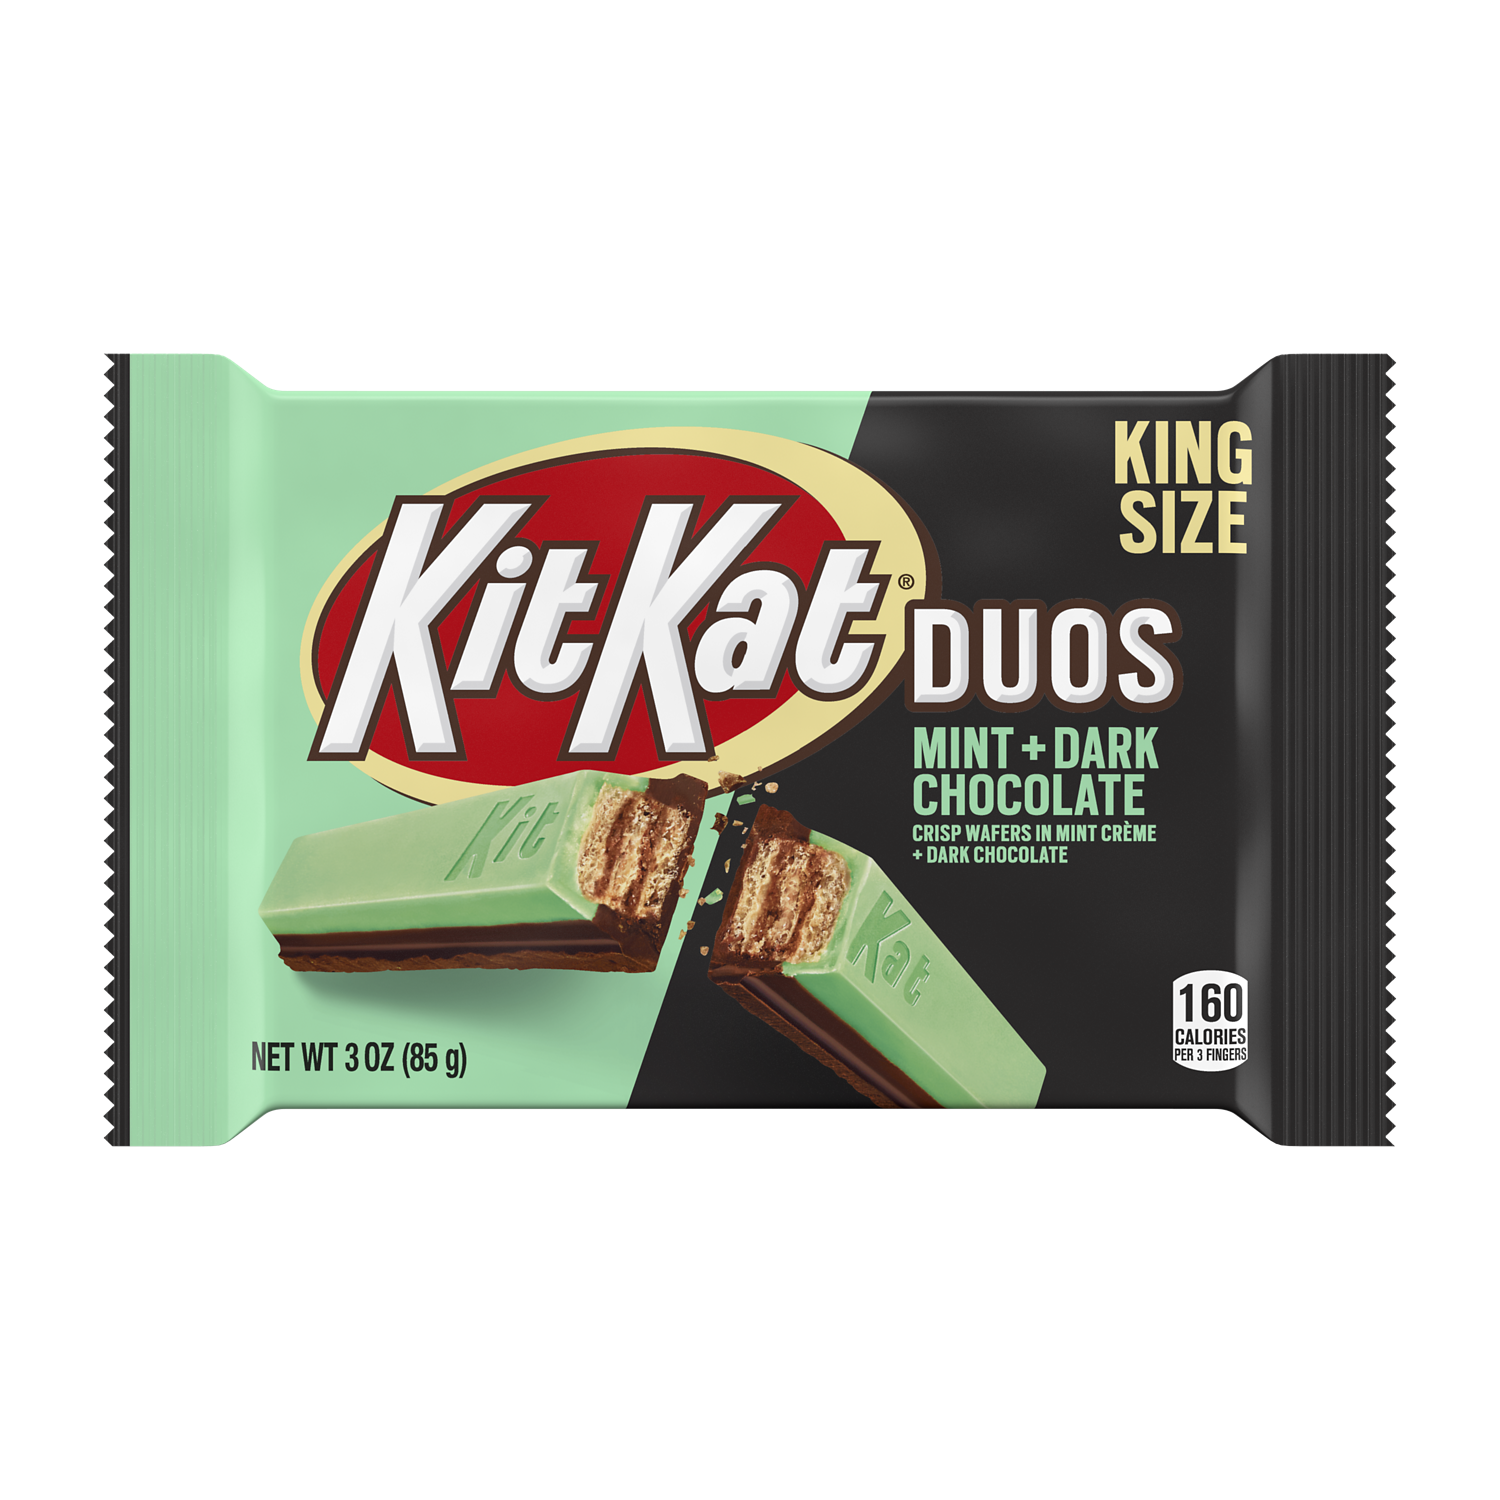 KIT KAT® DUOS Mint and Dark Chocolate King Size Candy Bar, 3 oz - Front of Package